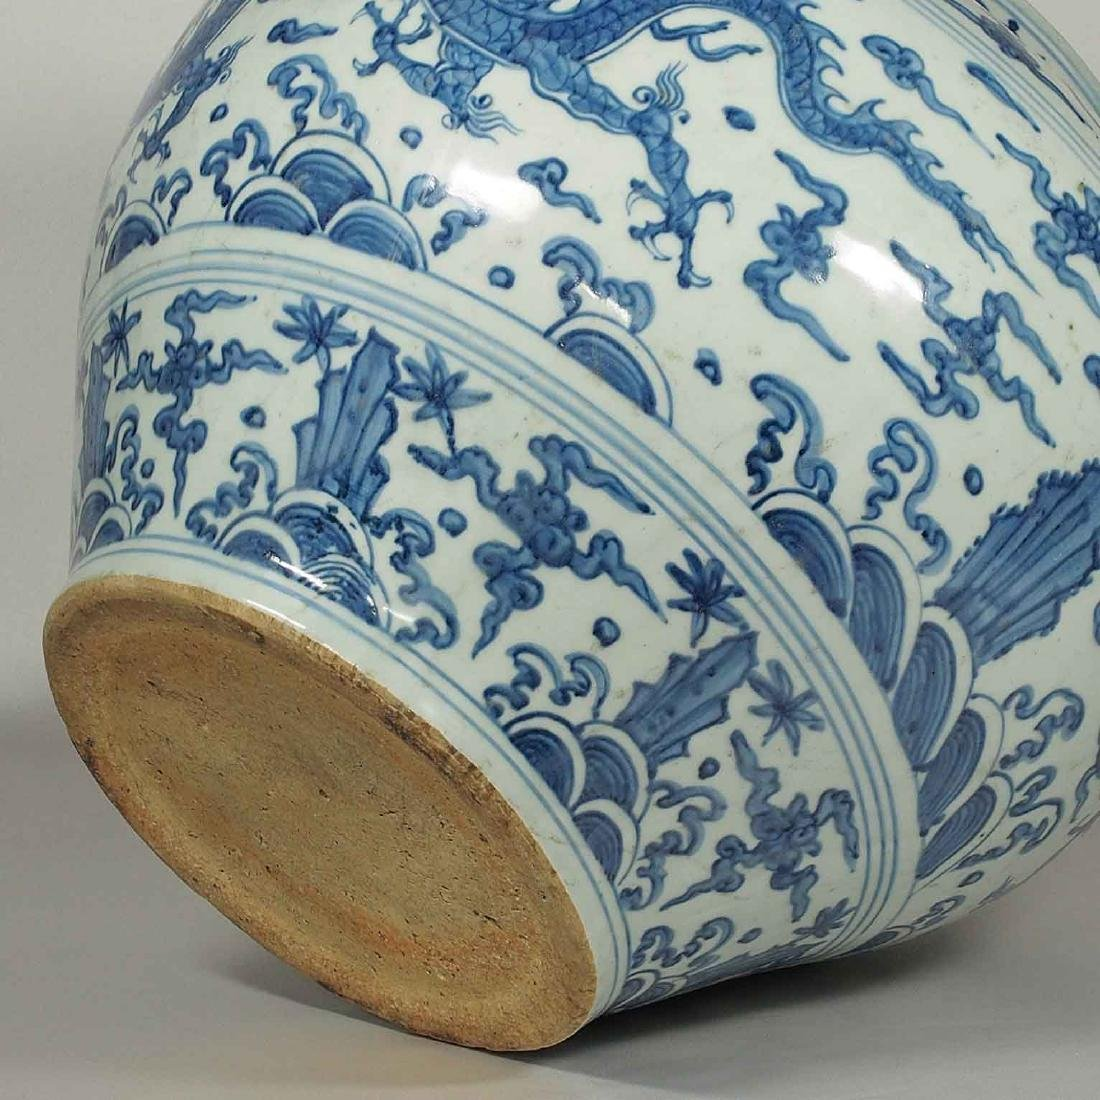 Massive Jar with Two Dragons Design, 15th Century Ming - 7